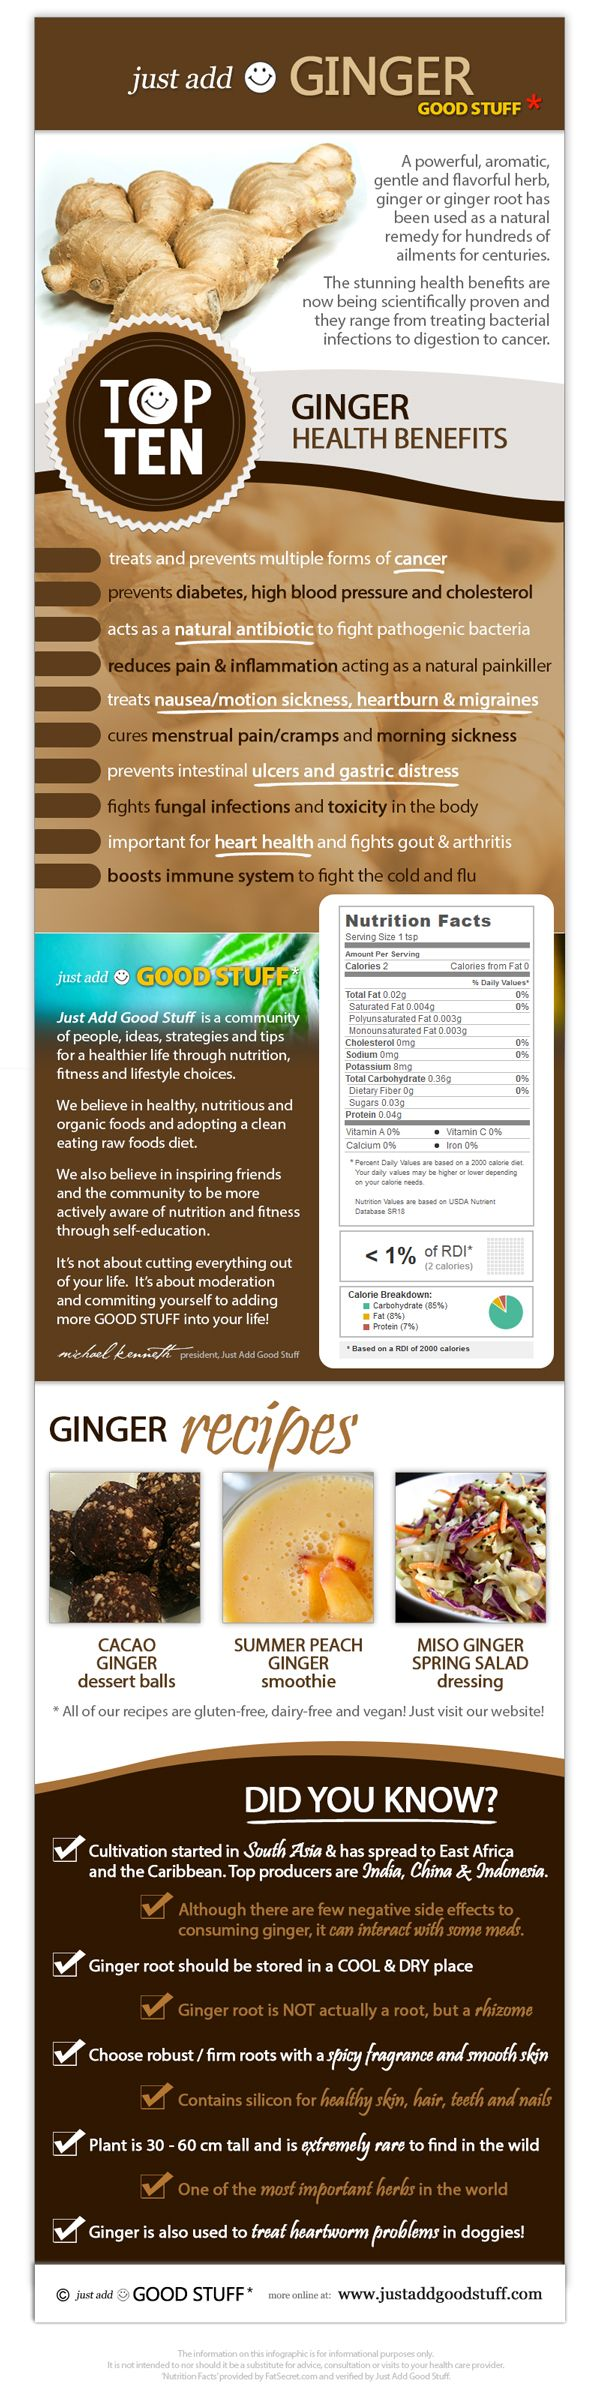 #GINGER #Infographic > Top 10 health benefits of ginger, interesting facts and great recipes online now > http://www.justaddgoodstuff.com/infographic-ginger/